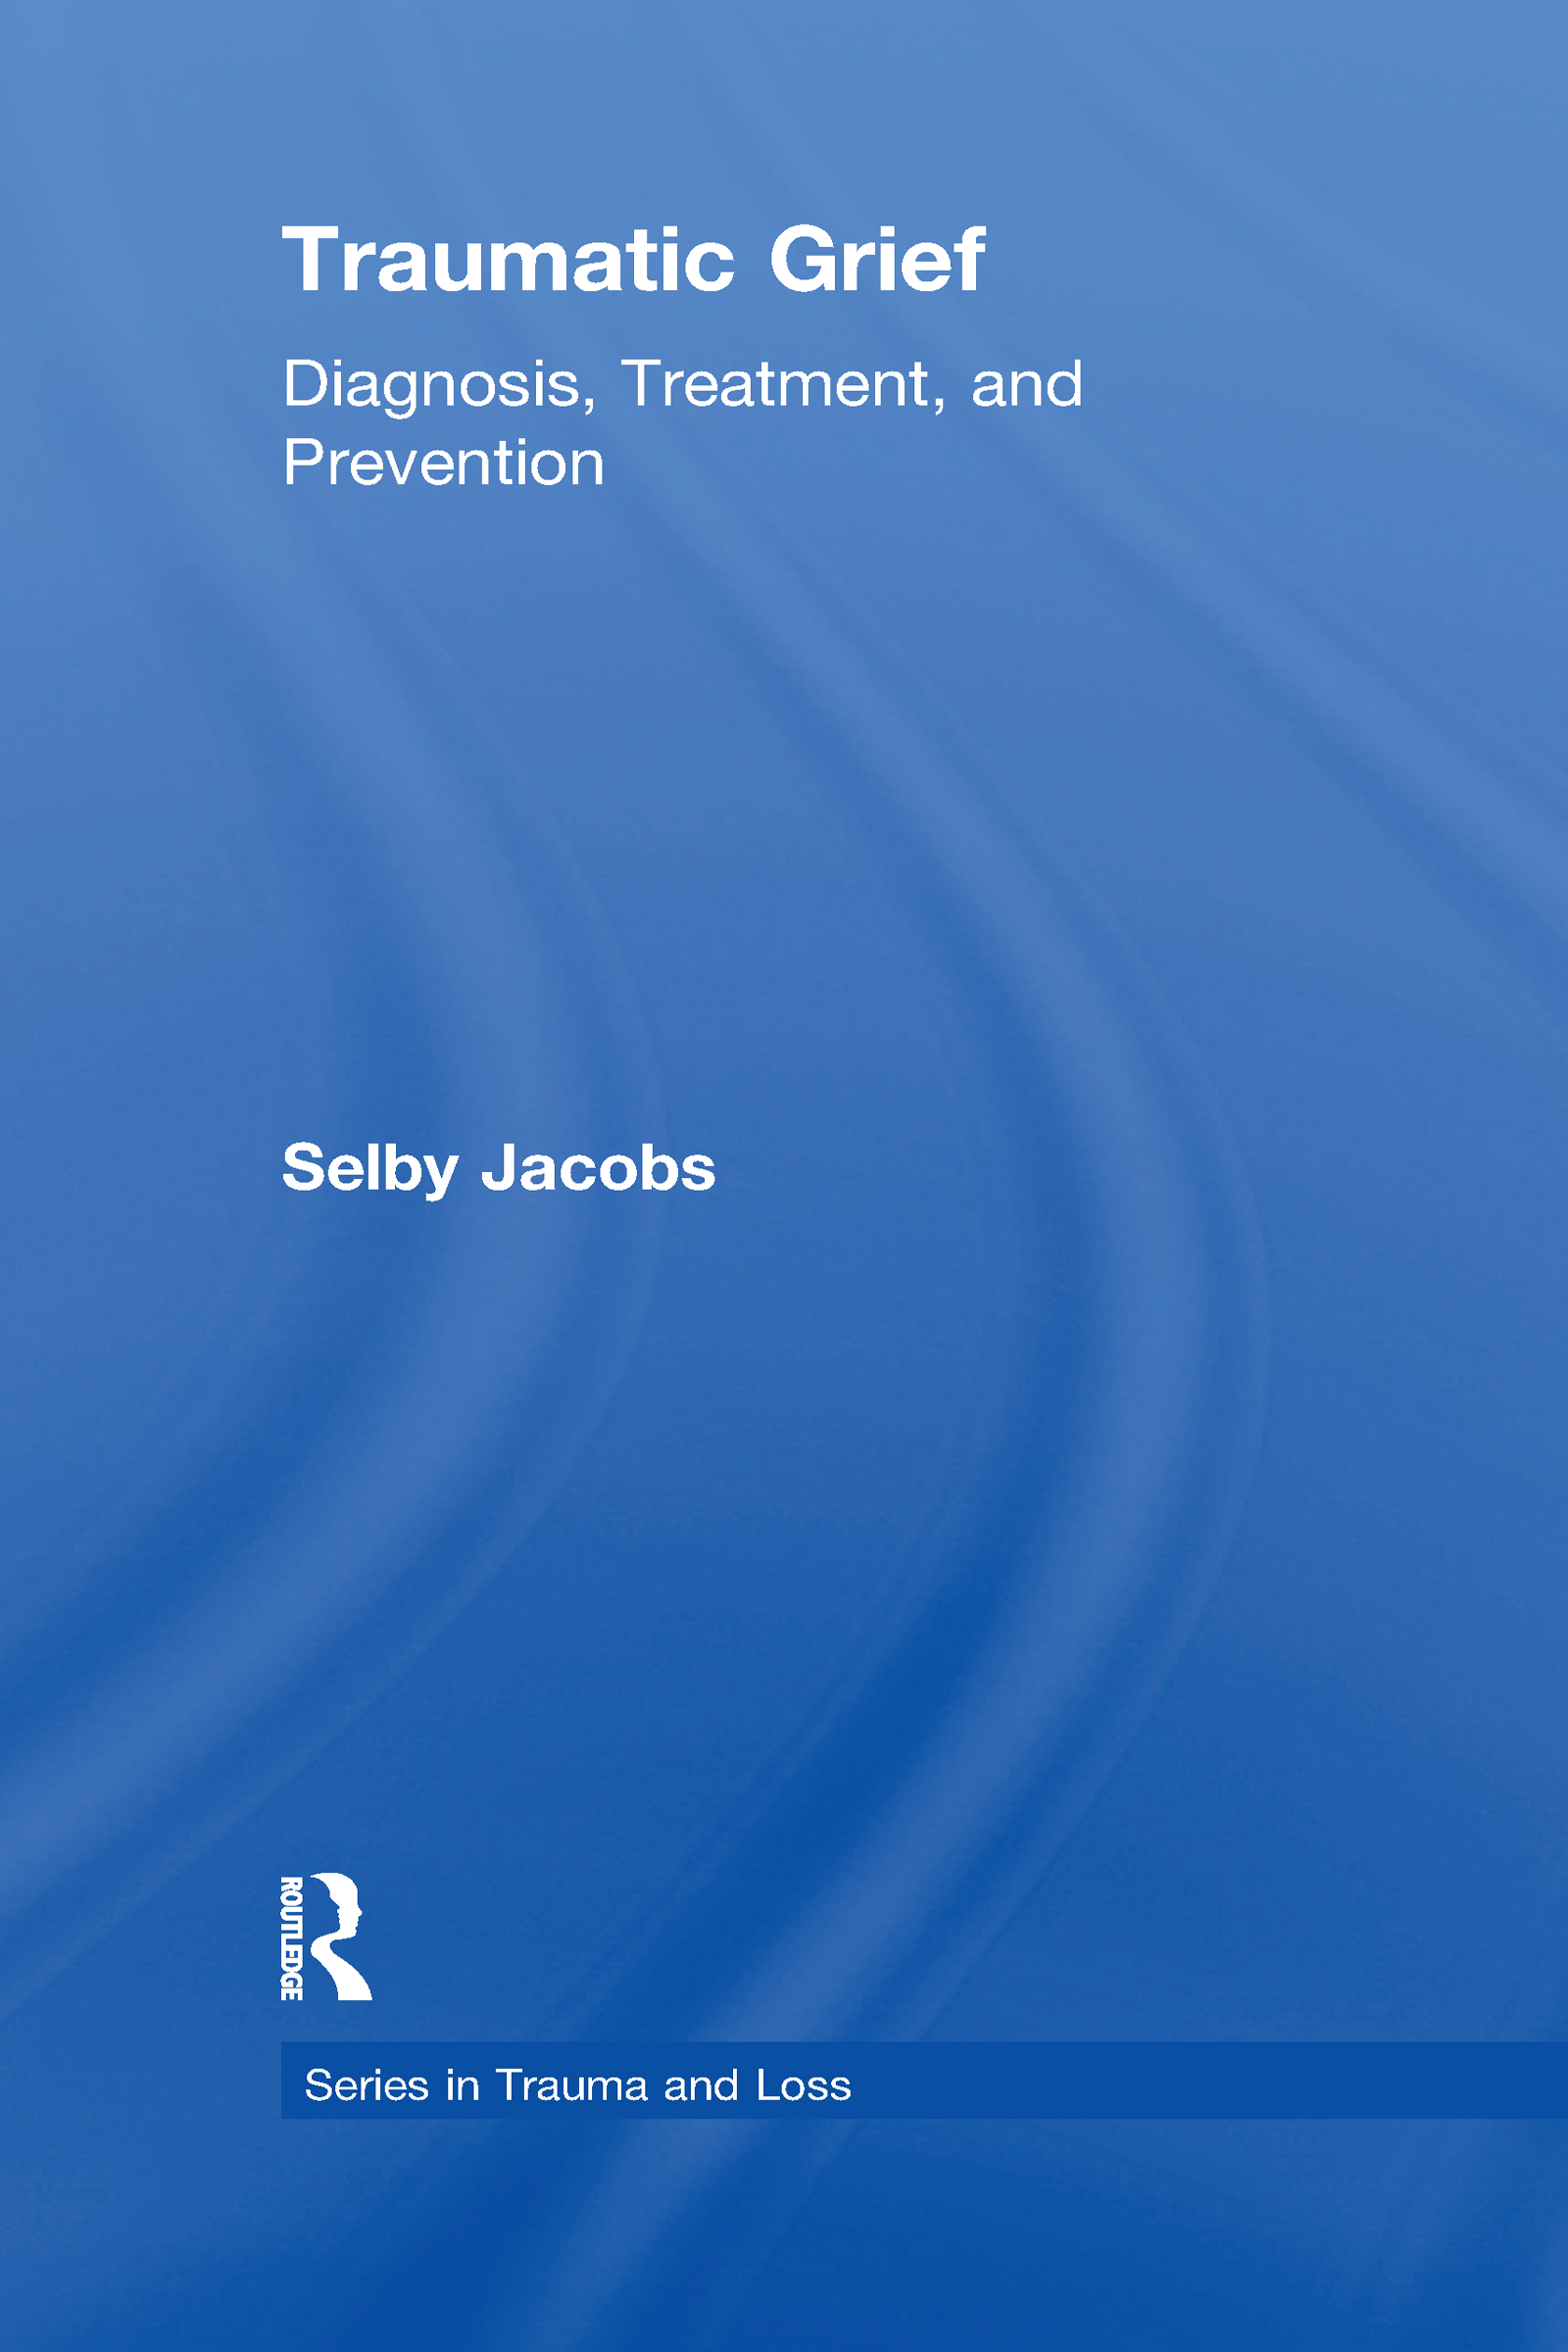 Traumatic Grief: Diagnosis, Treatment, and Prevention book cover